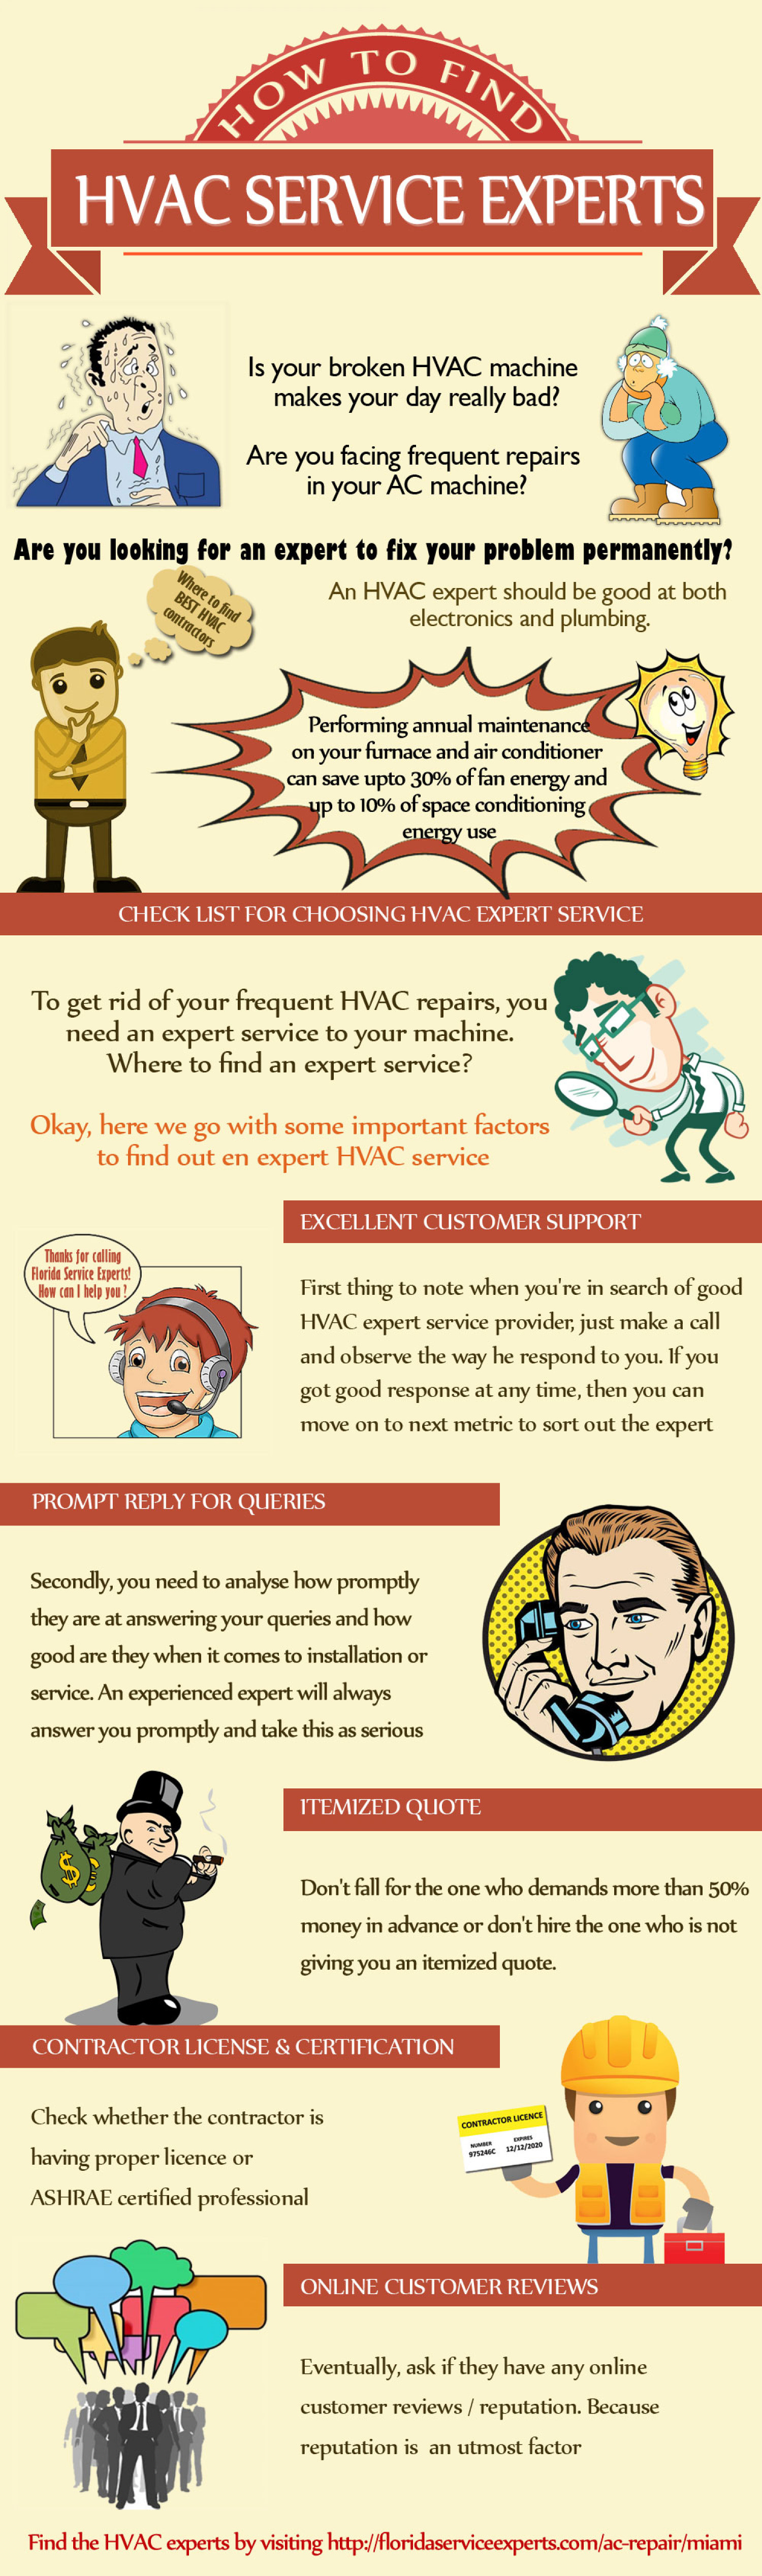 How to Find HVAC Service Experts Infographic